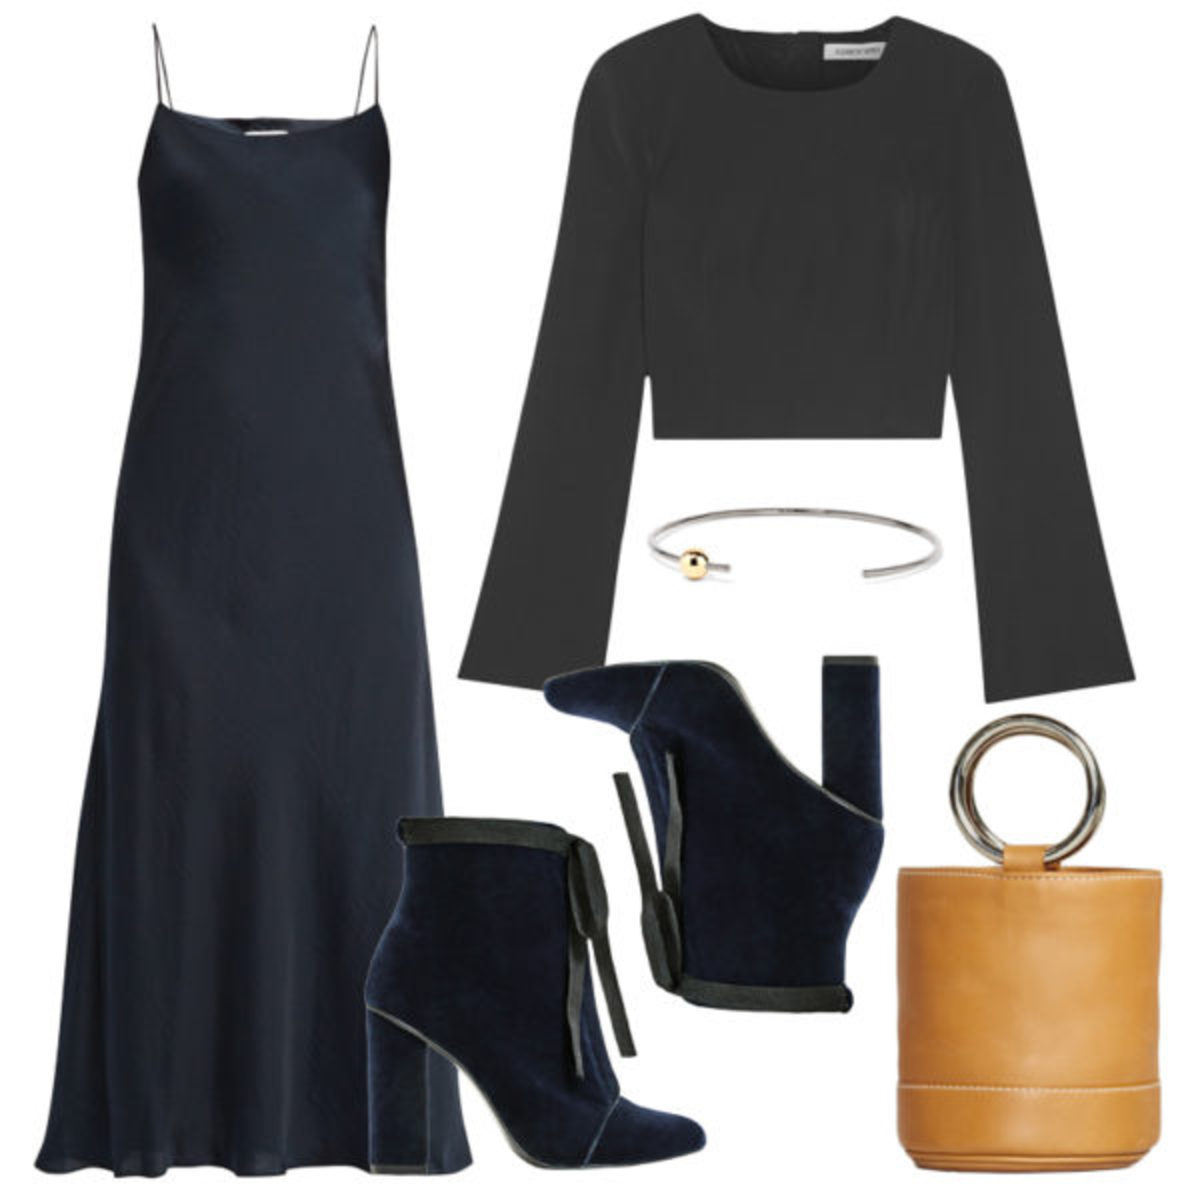 slip-dress-outfit-04-1-600x600